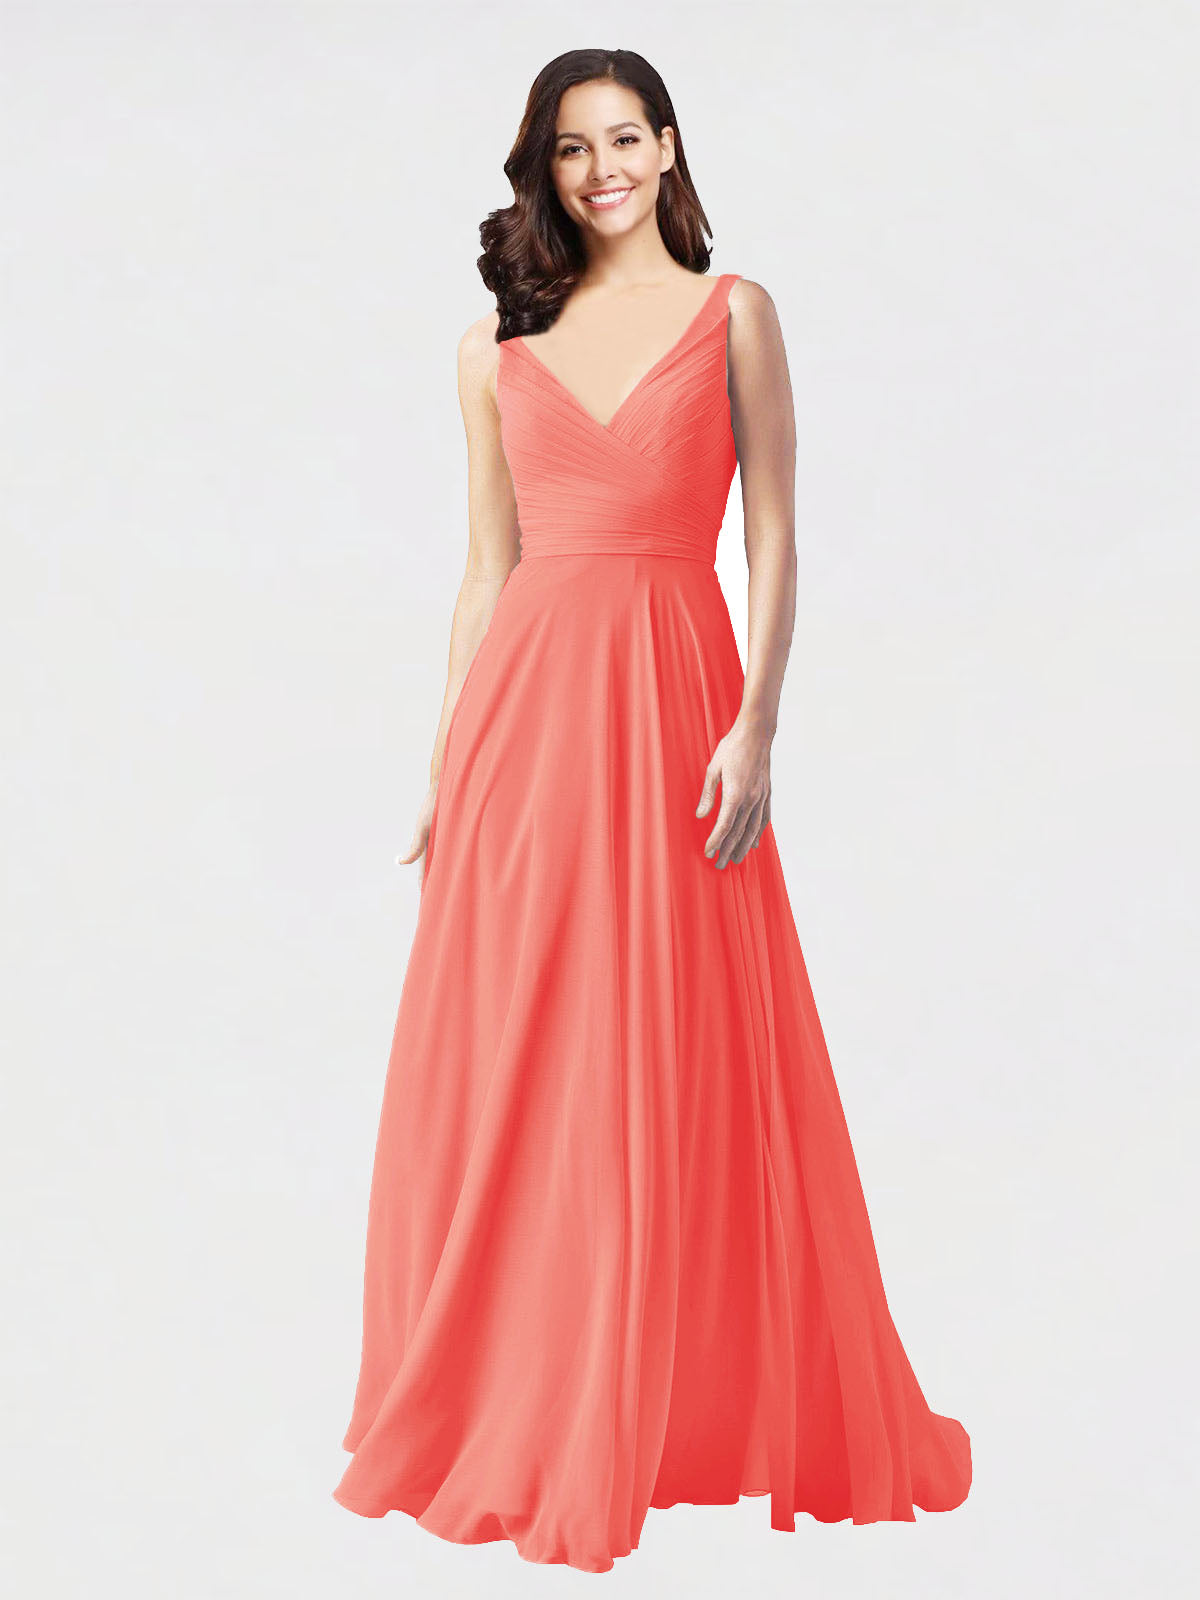 Long A-Line V-Neck Sleeveless Coral Chiffon Bridesmaid Dress Bernice